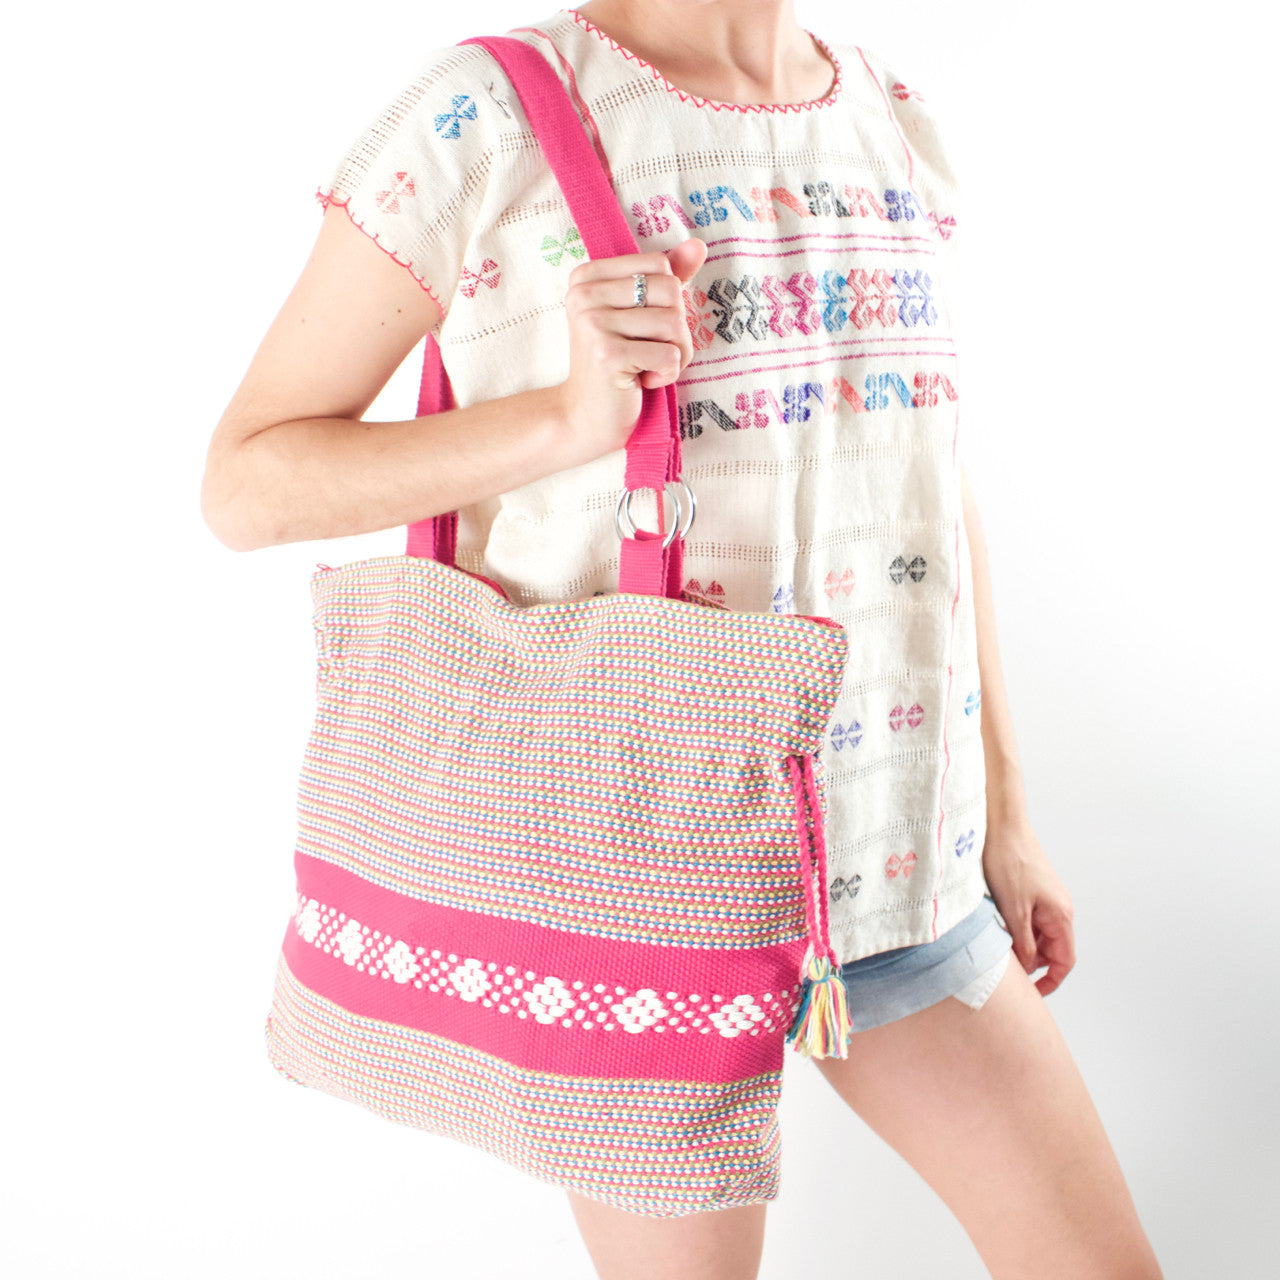 Jalieza Shoulder Bag  Shoulder Bag Pink & Green - Cielo Collective handmade Mexico Guatemala